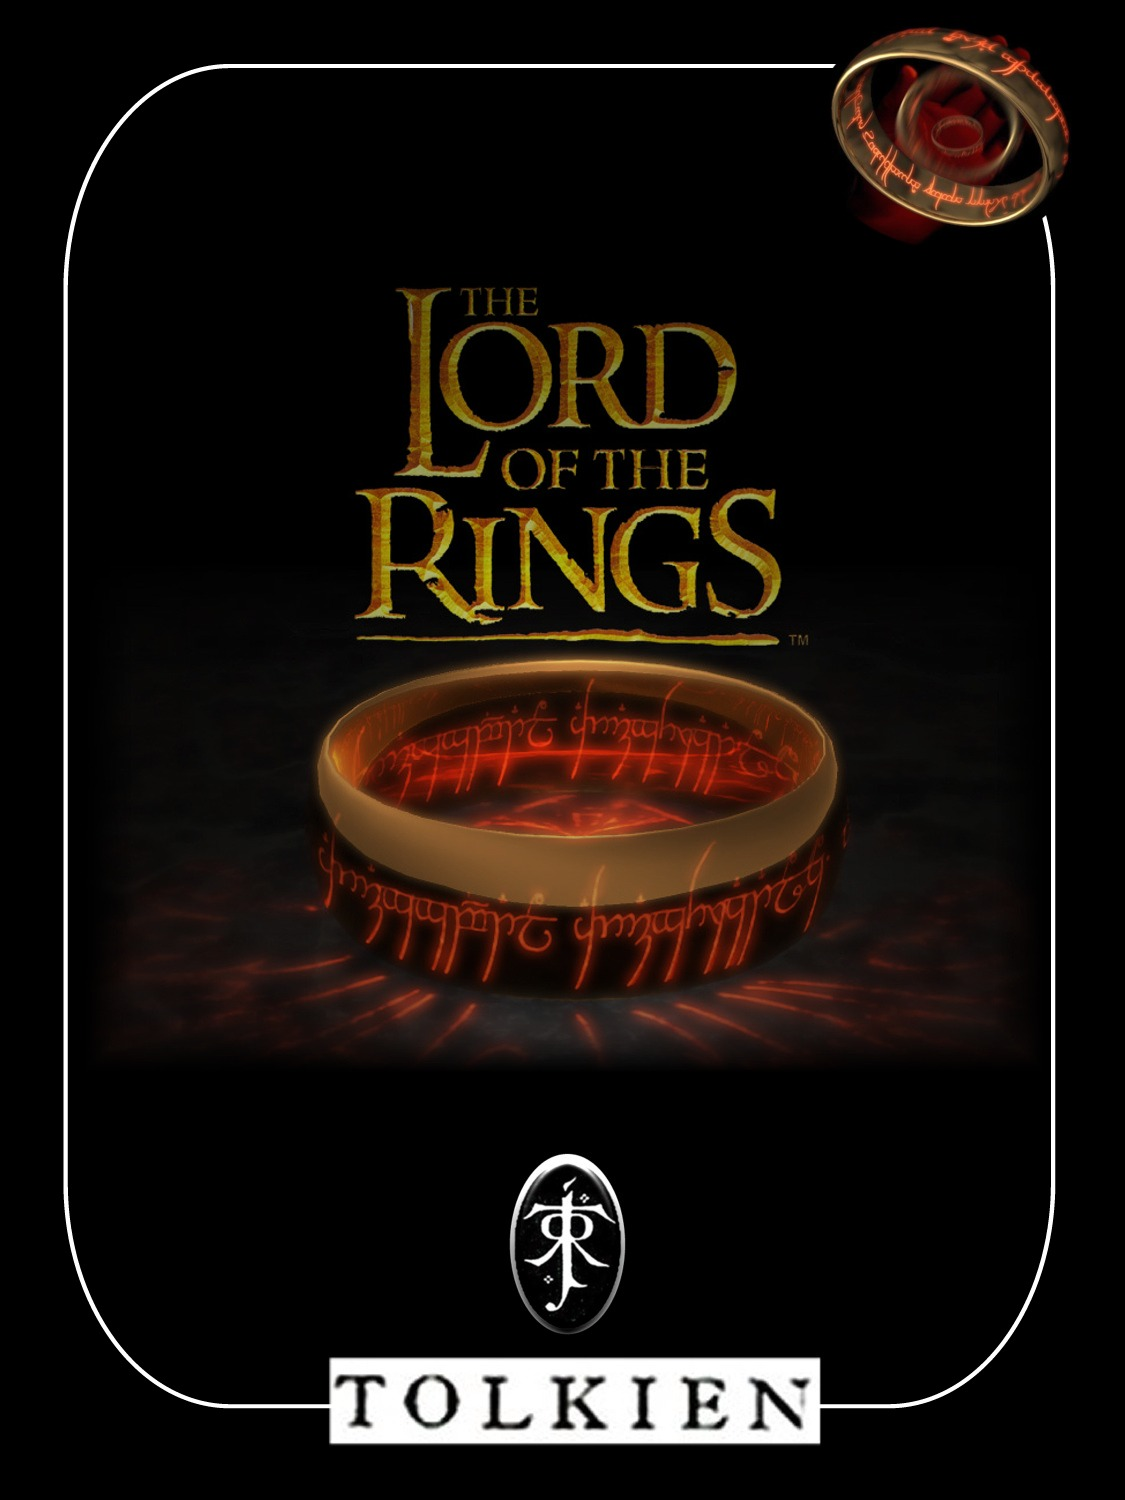 One Ring to rule them all, One Ring to find them